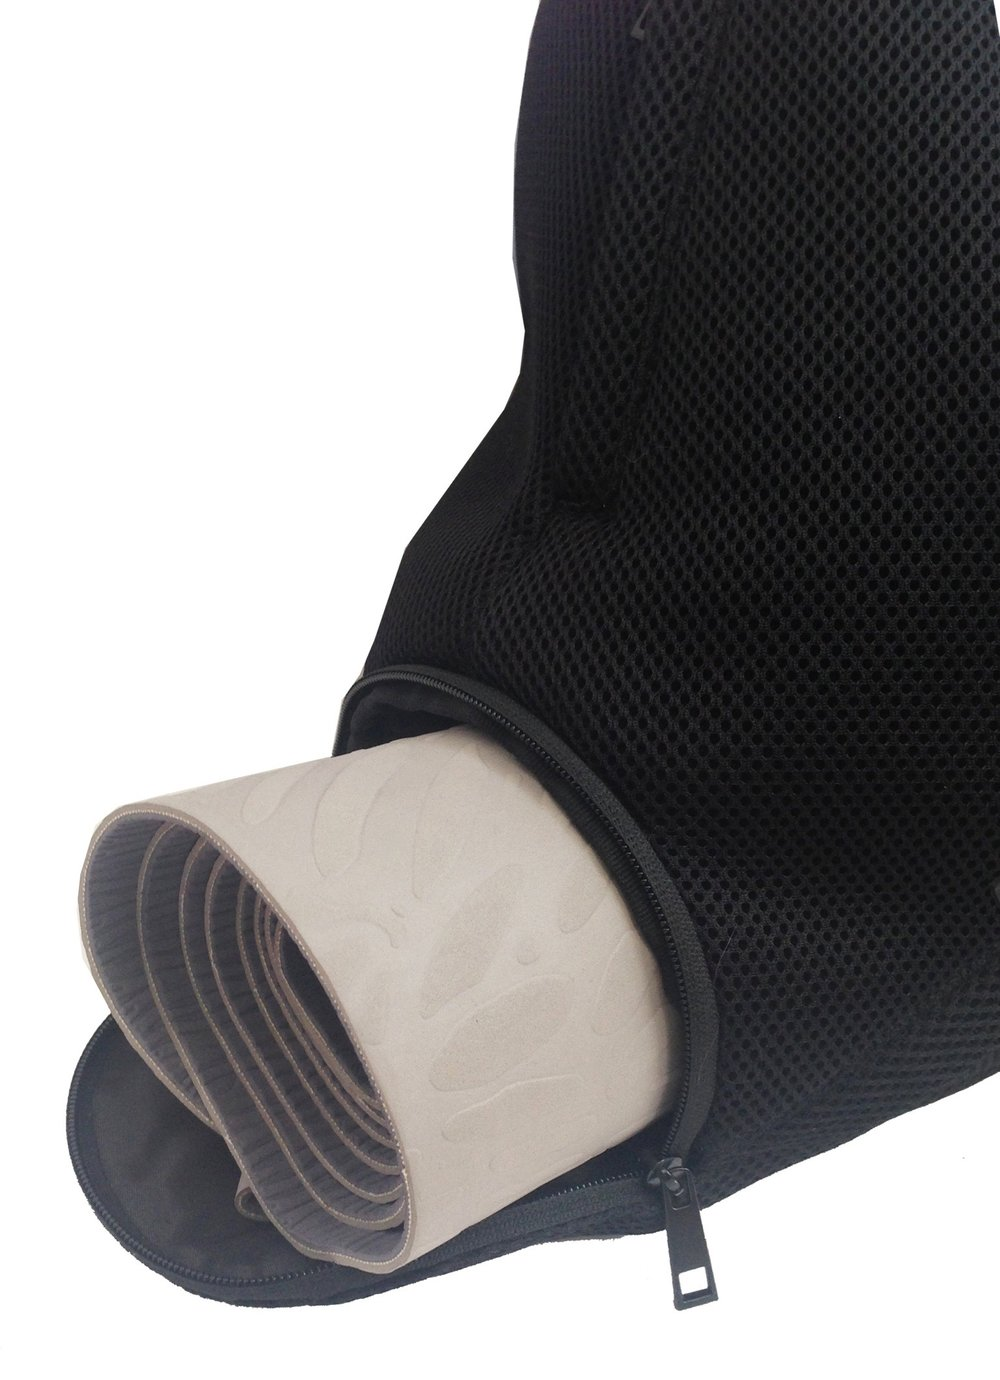 -Or yoga mat compartment